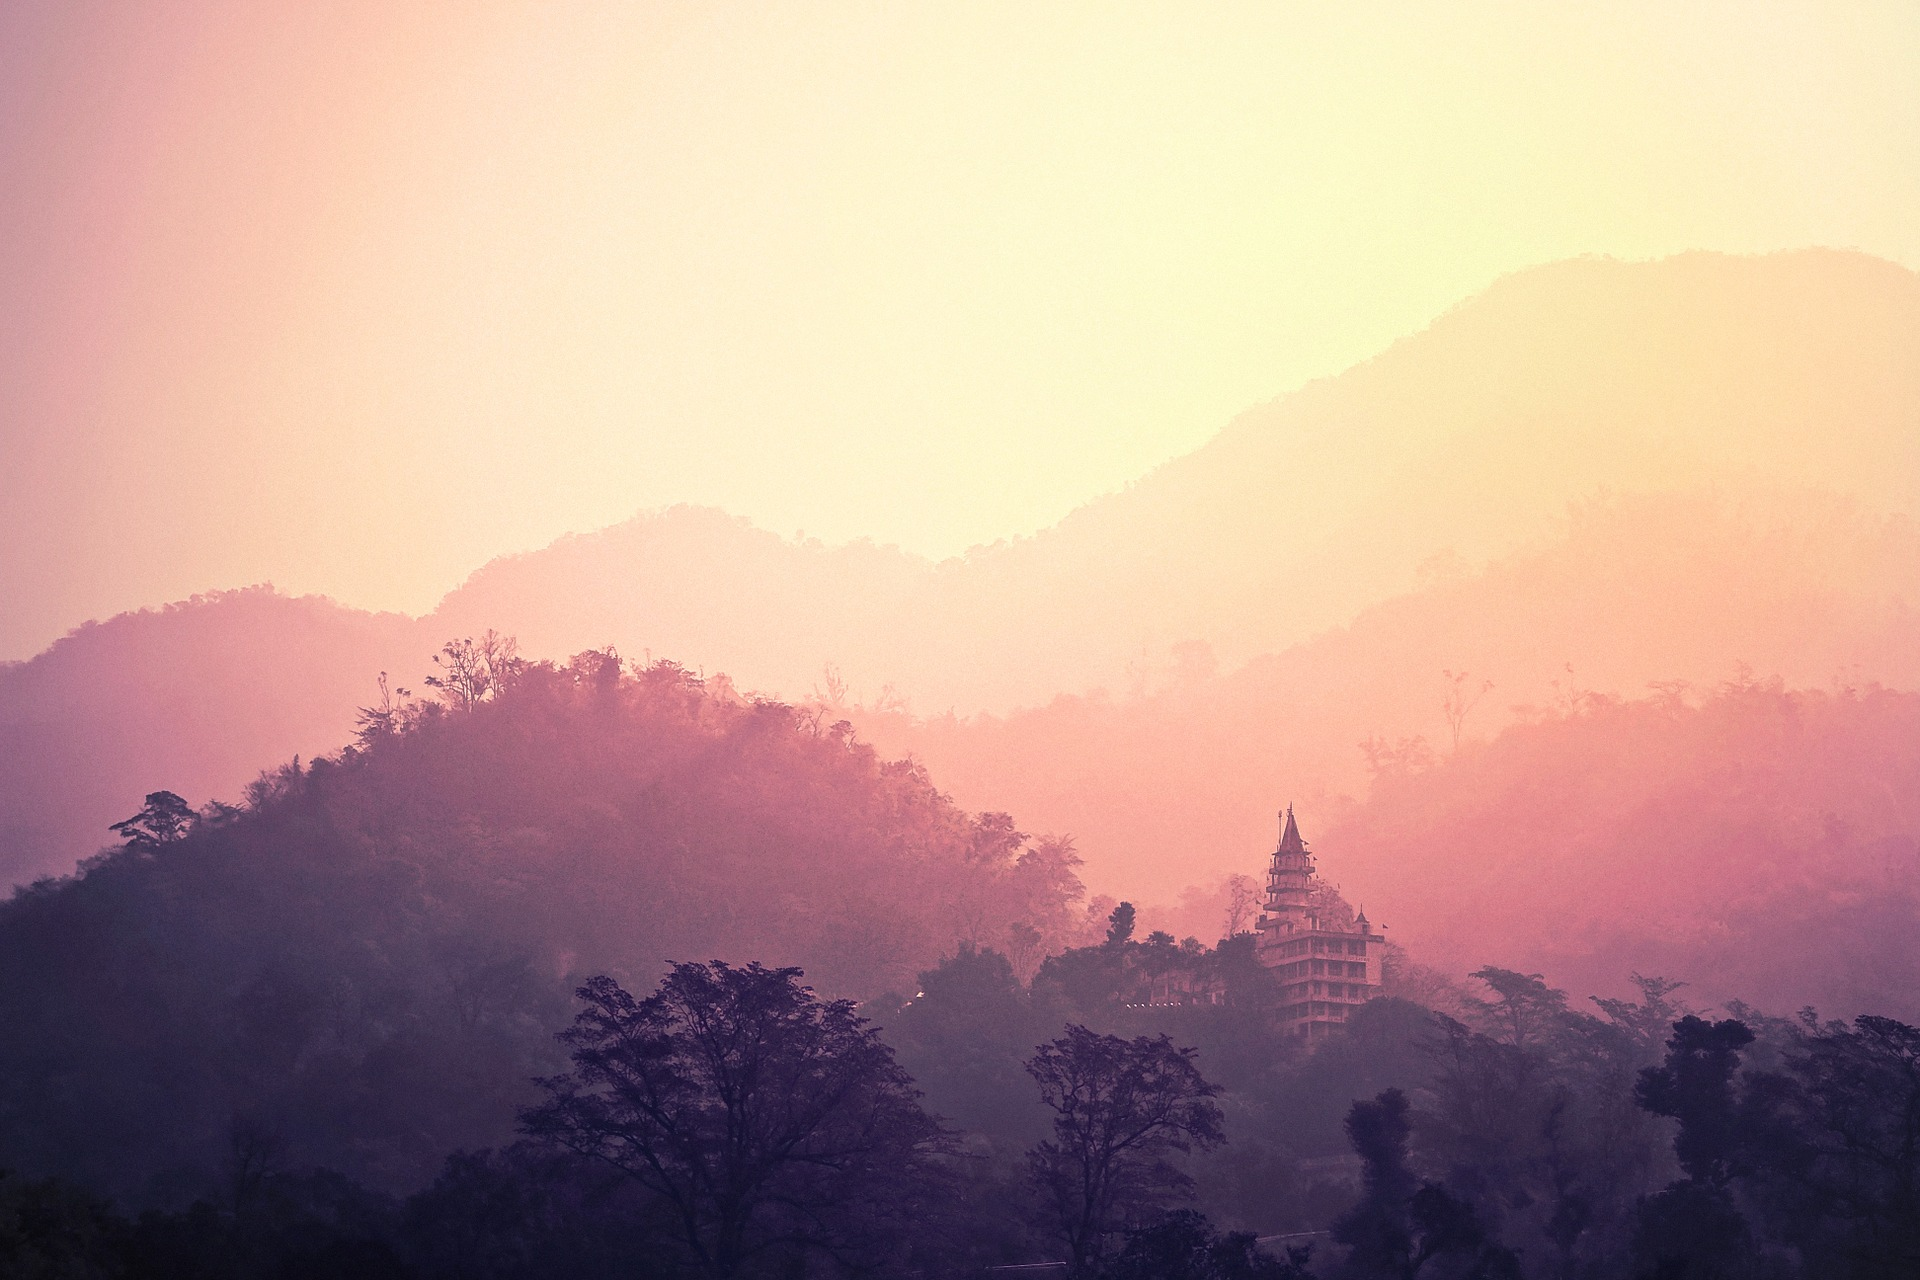 hippy towns in asia